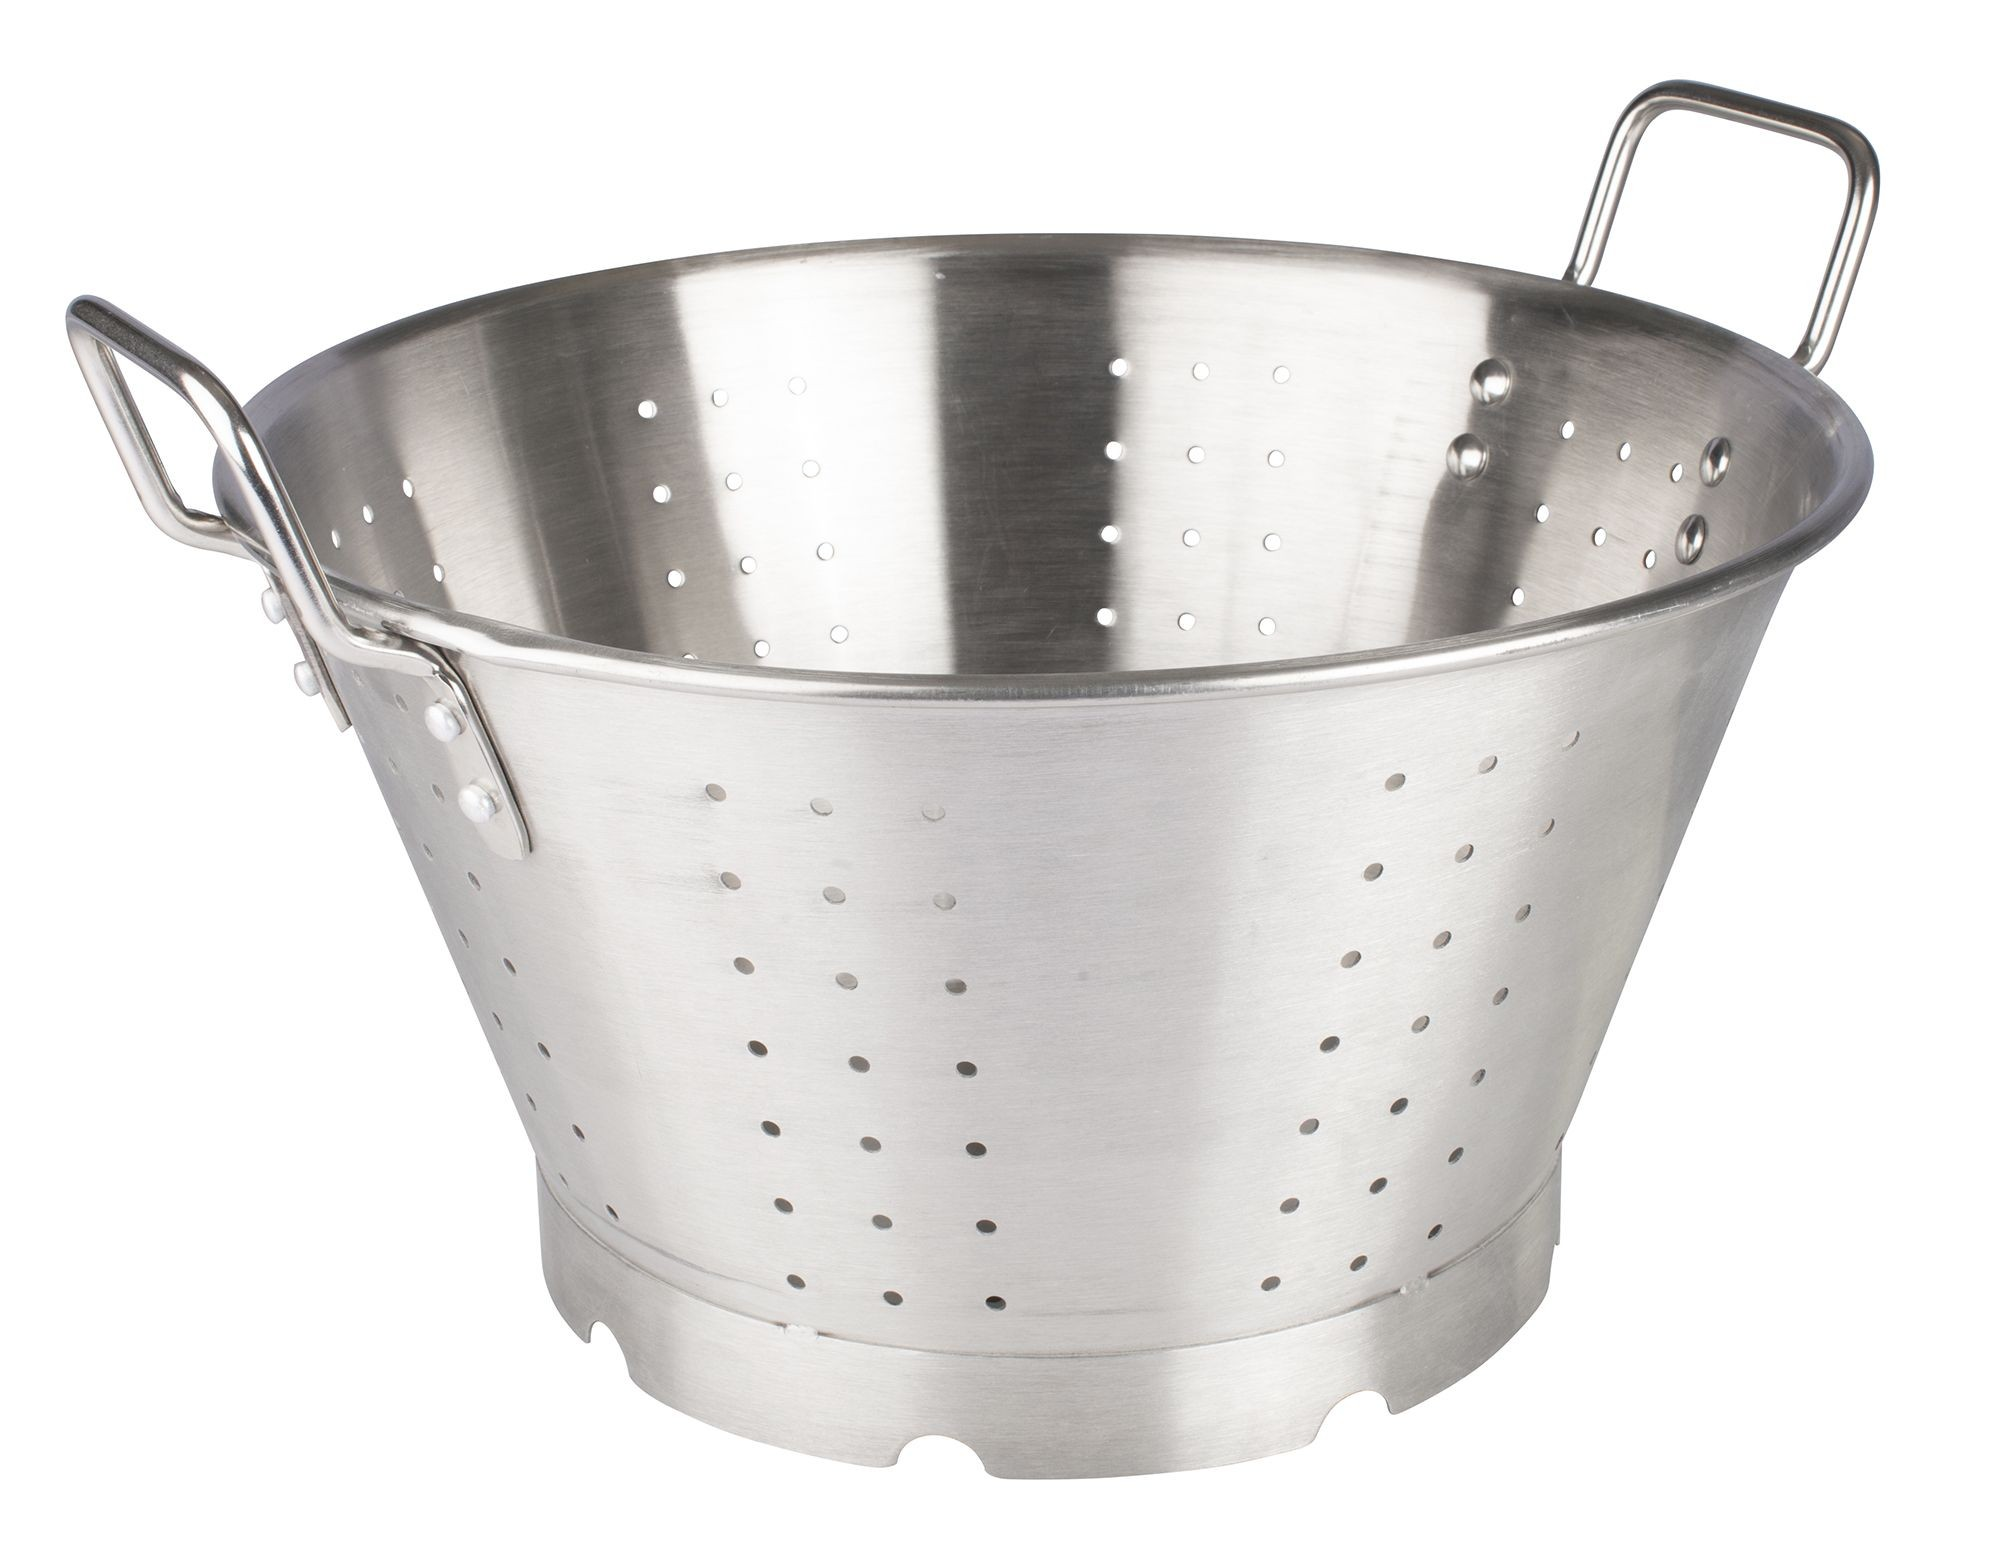 Heavy Duty Stainless Steel Colander, 16Qt, 16-1/2